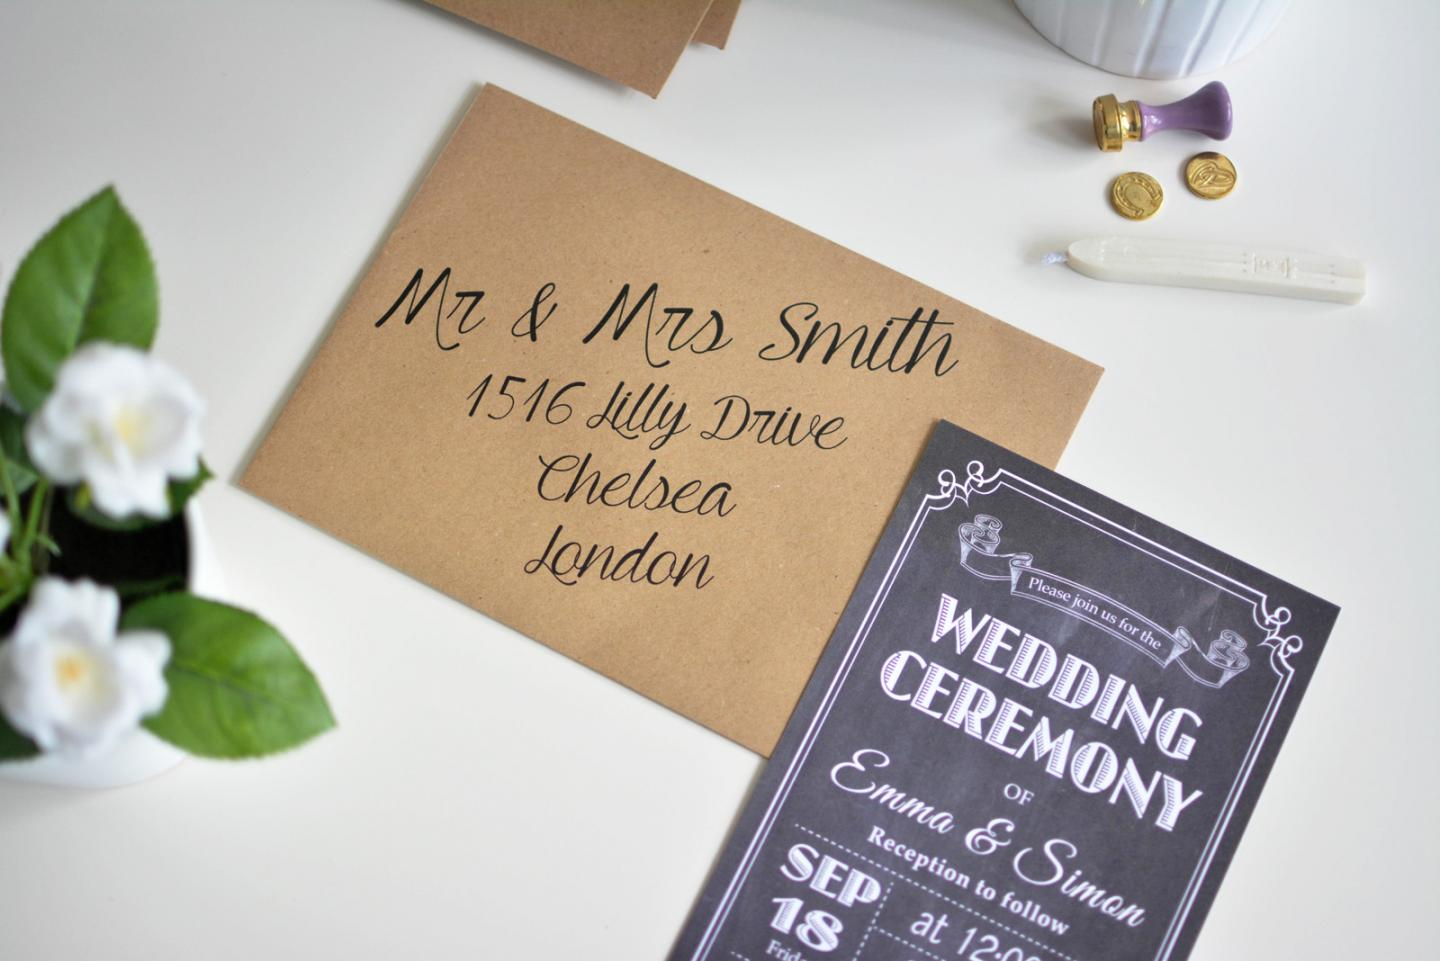 EJSTYLE Wedding - Chalboard Wedding invitations, kraft paper envelopes, diy wedding invites, low cost wedding invitations, print your own envelopes